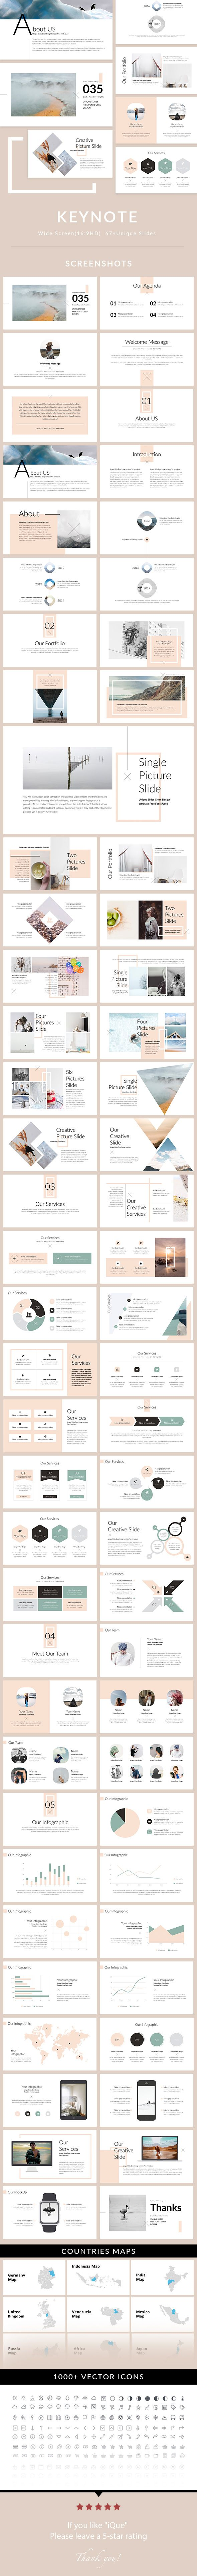 iQue - Keynote Presentation Template